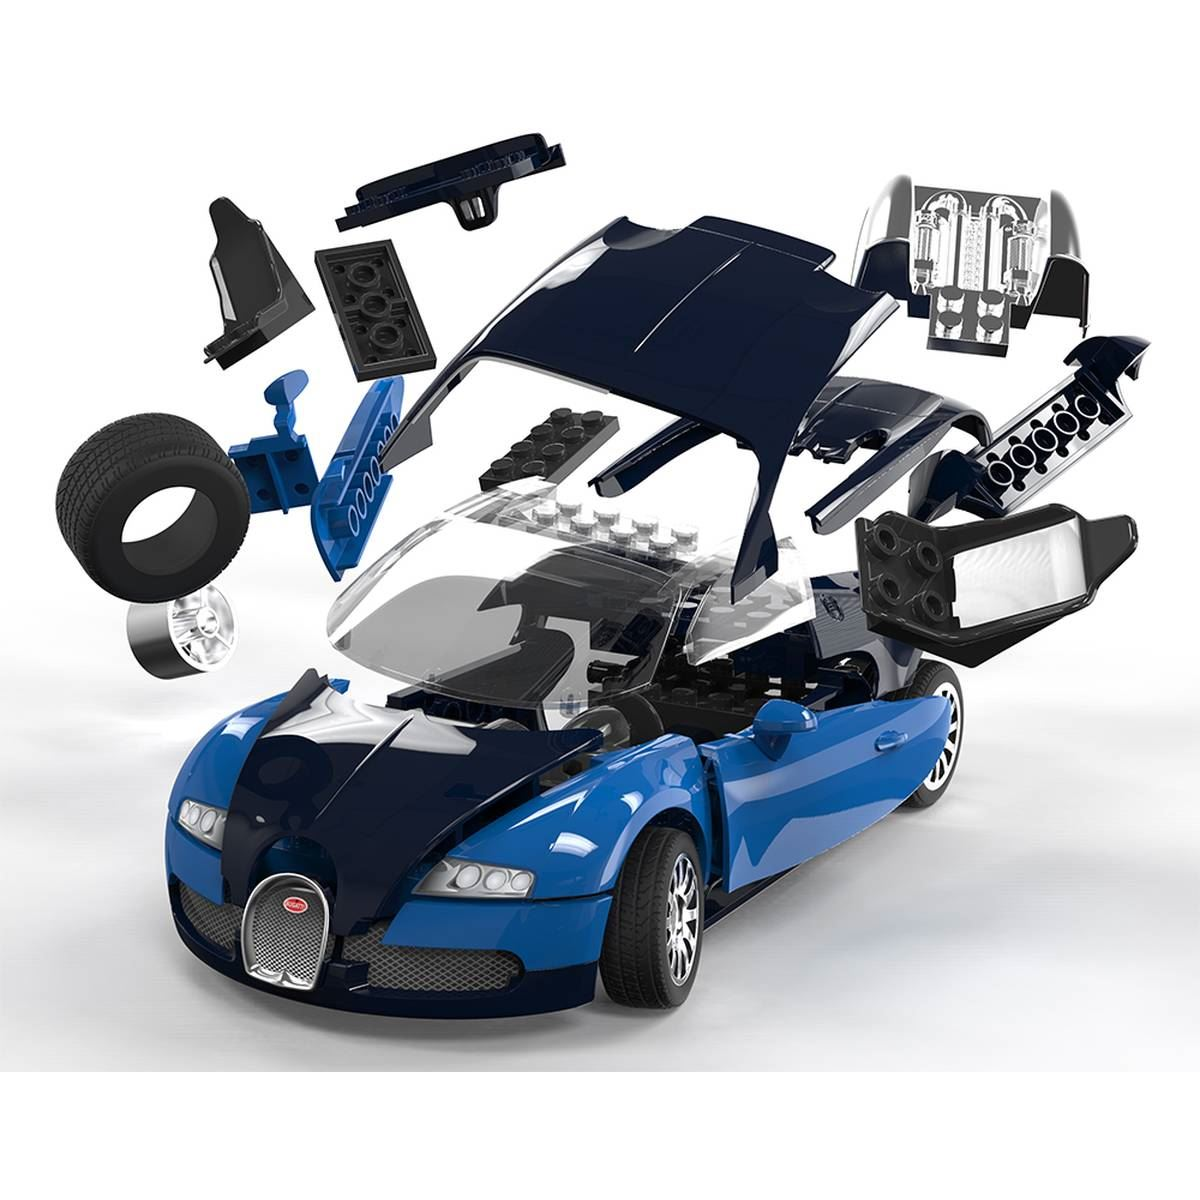 airfix quick build bugatti veyron model kit car construction kids gift toy cr. Black Bedroom Furniture Sets. Home Design Ideas